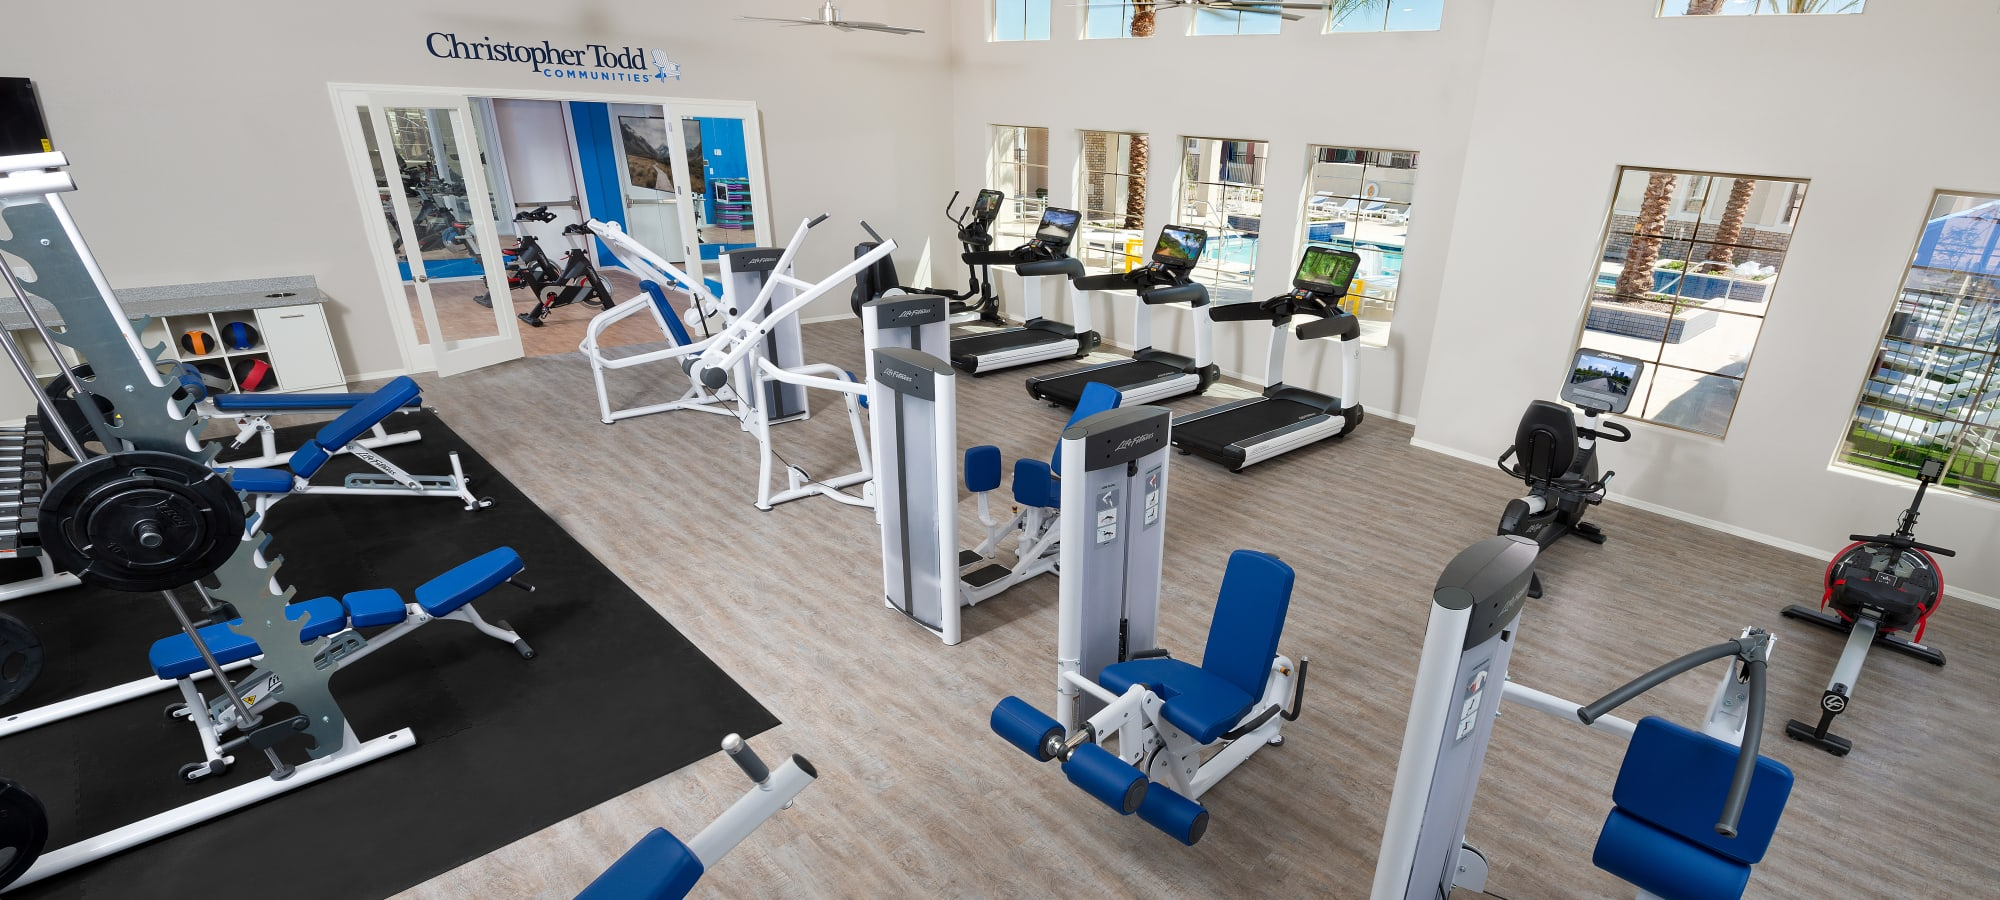 Fitness center and yoga studio at Christopher Todd Communities At Stadium in Glendale, Arizona